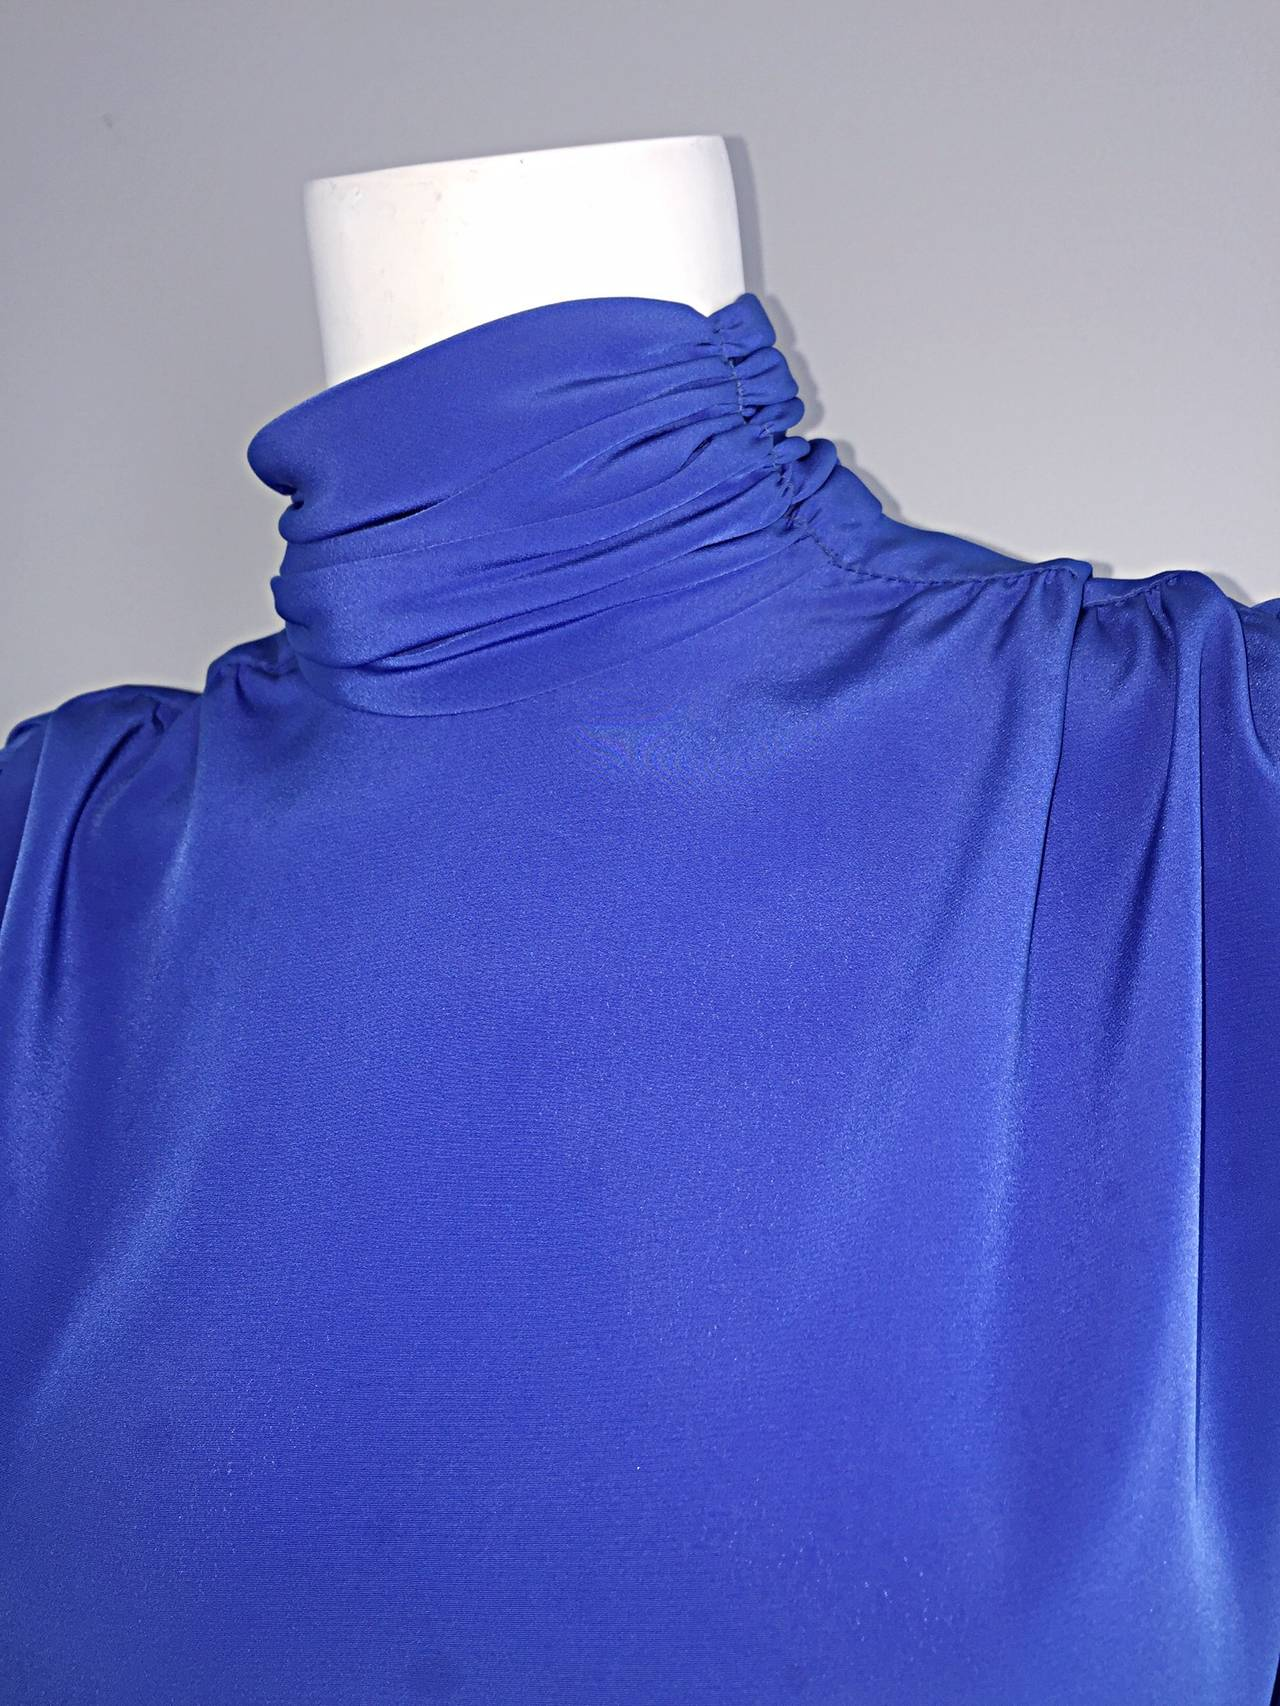 St. John Blue Silk Vintage Secretary Shirt Blouse w/ Puff Sleeves 6